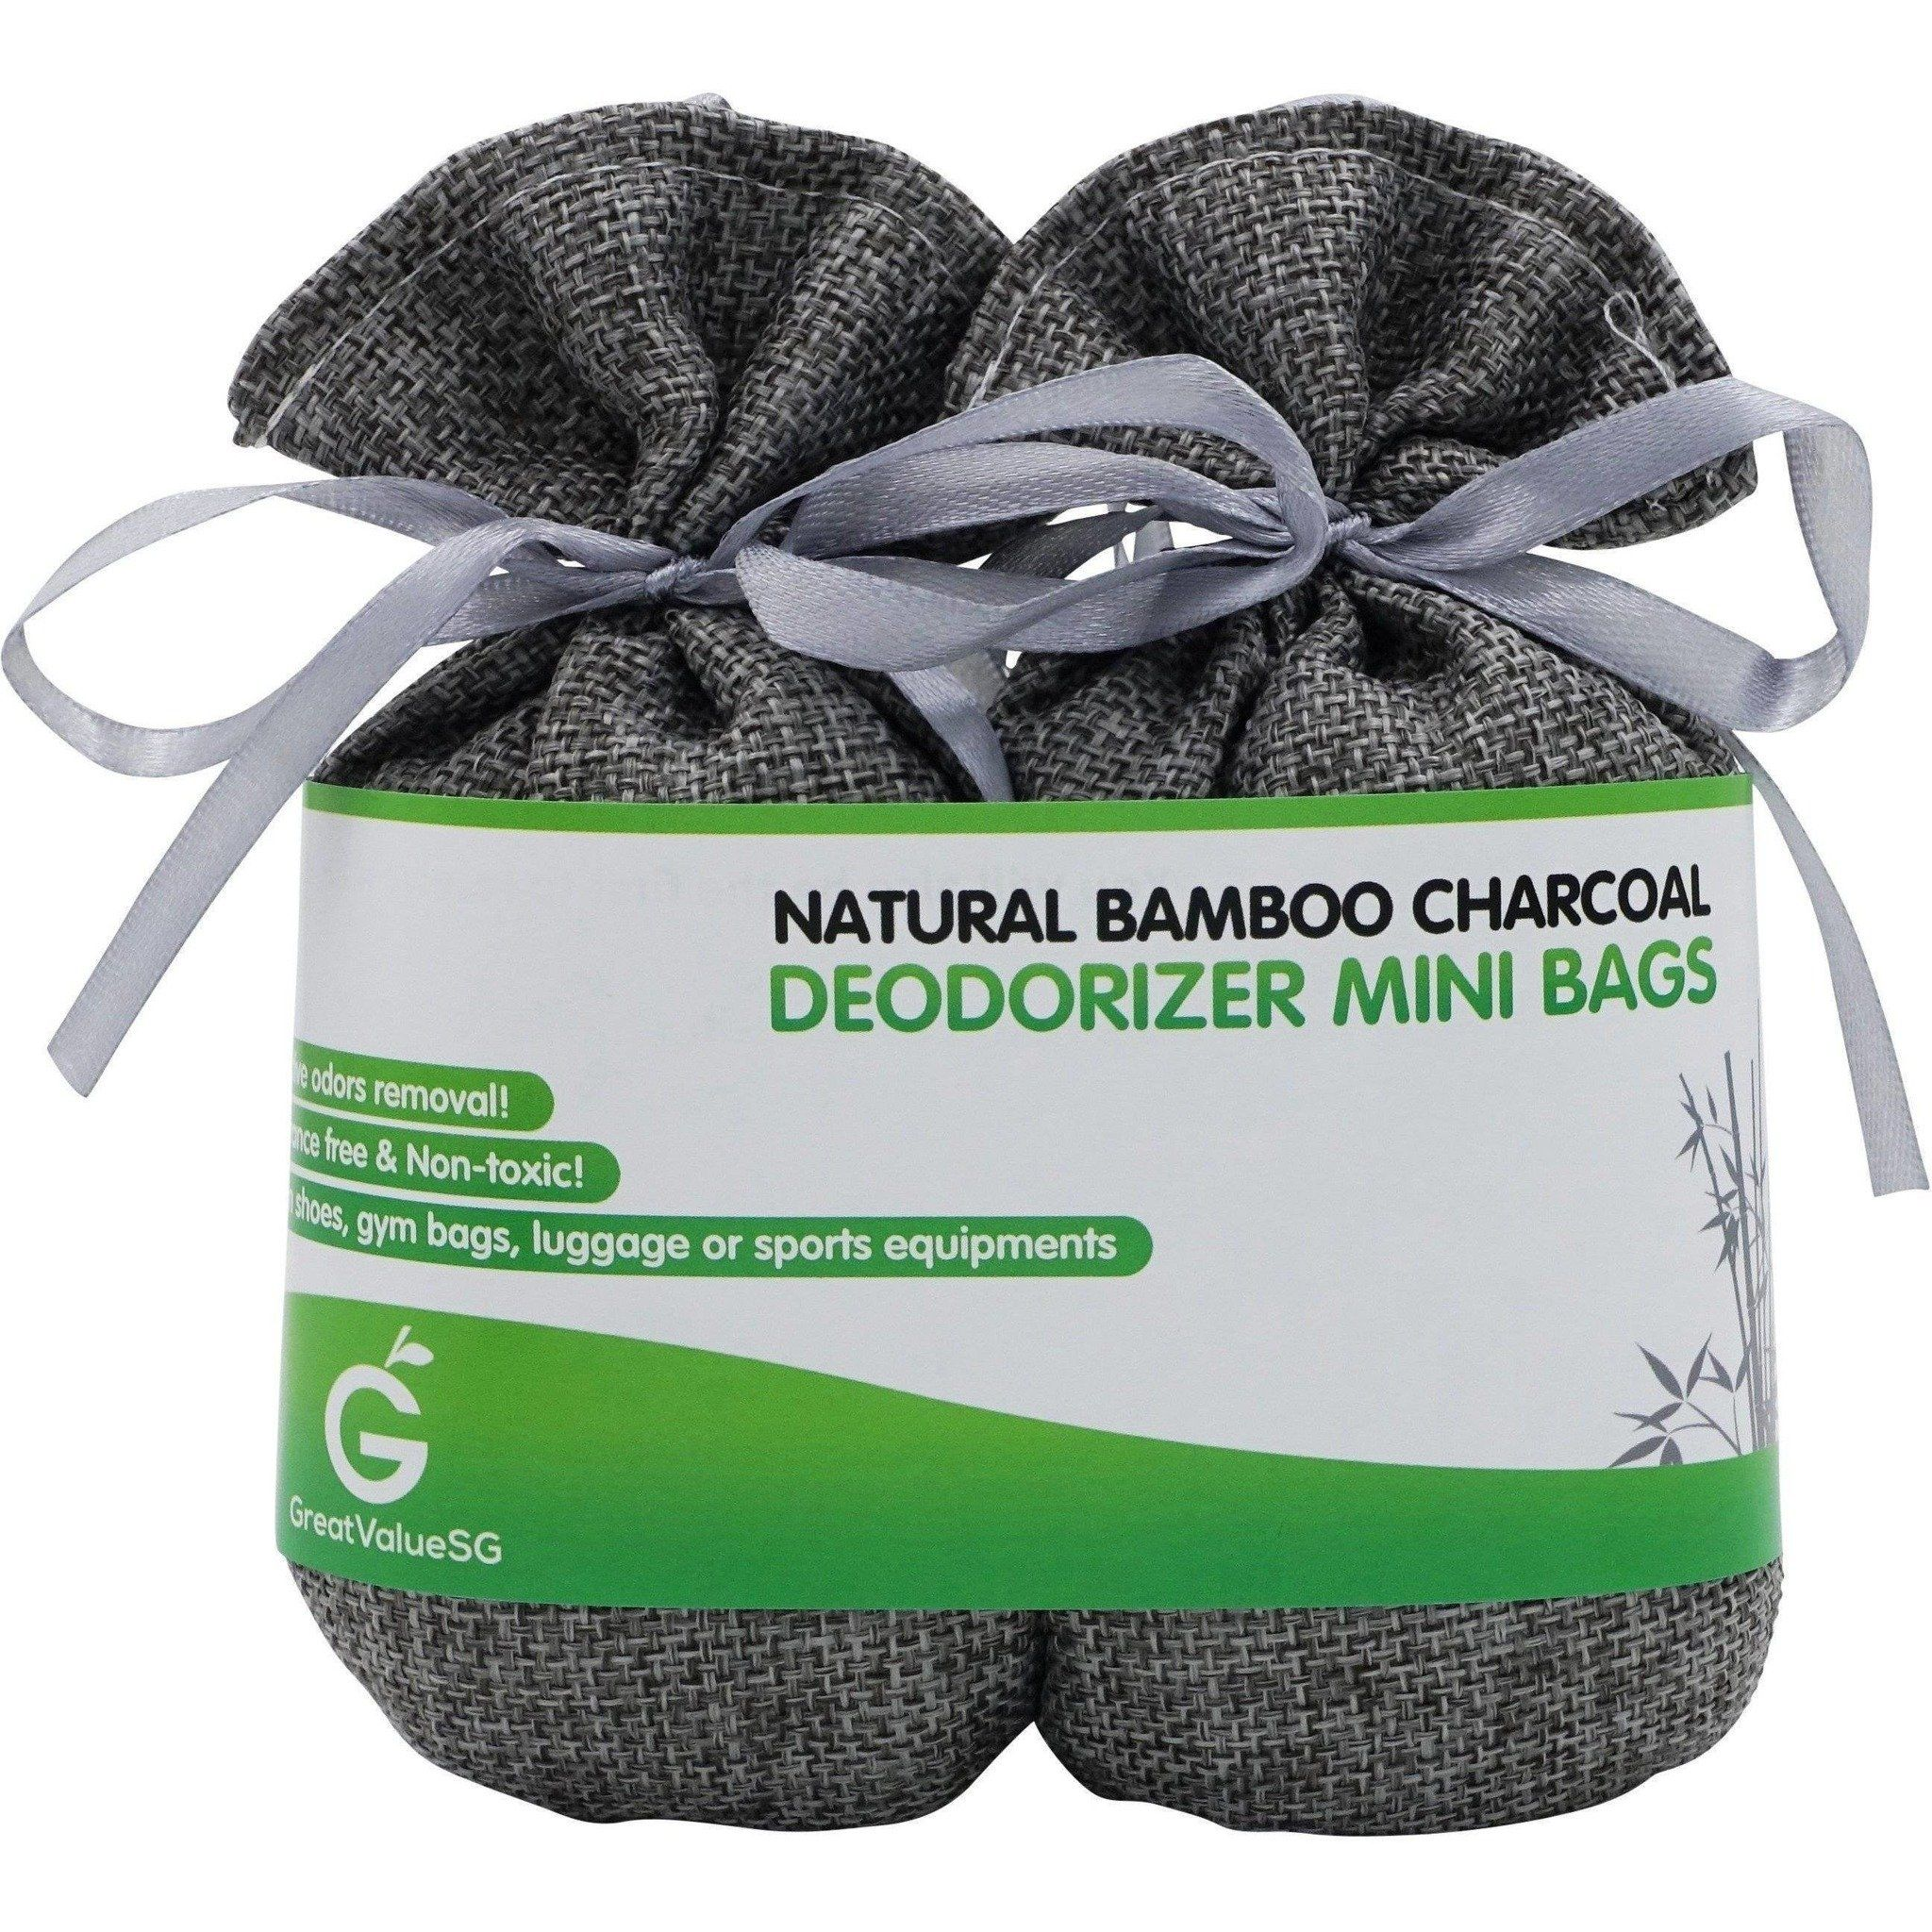 Bamboo Charcoal Deodorizer Mini Bags Smelly shoes